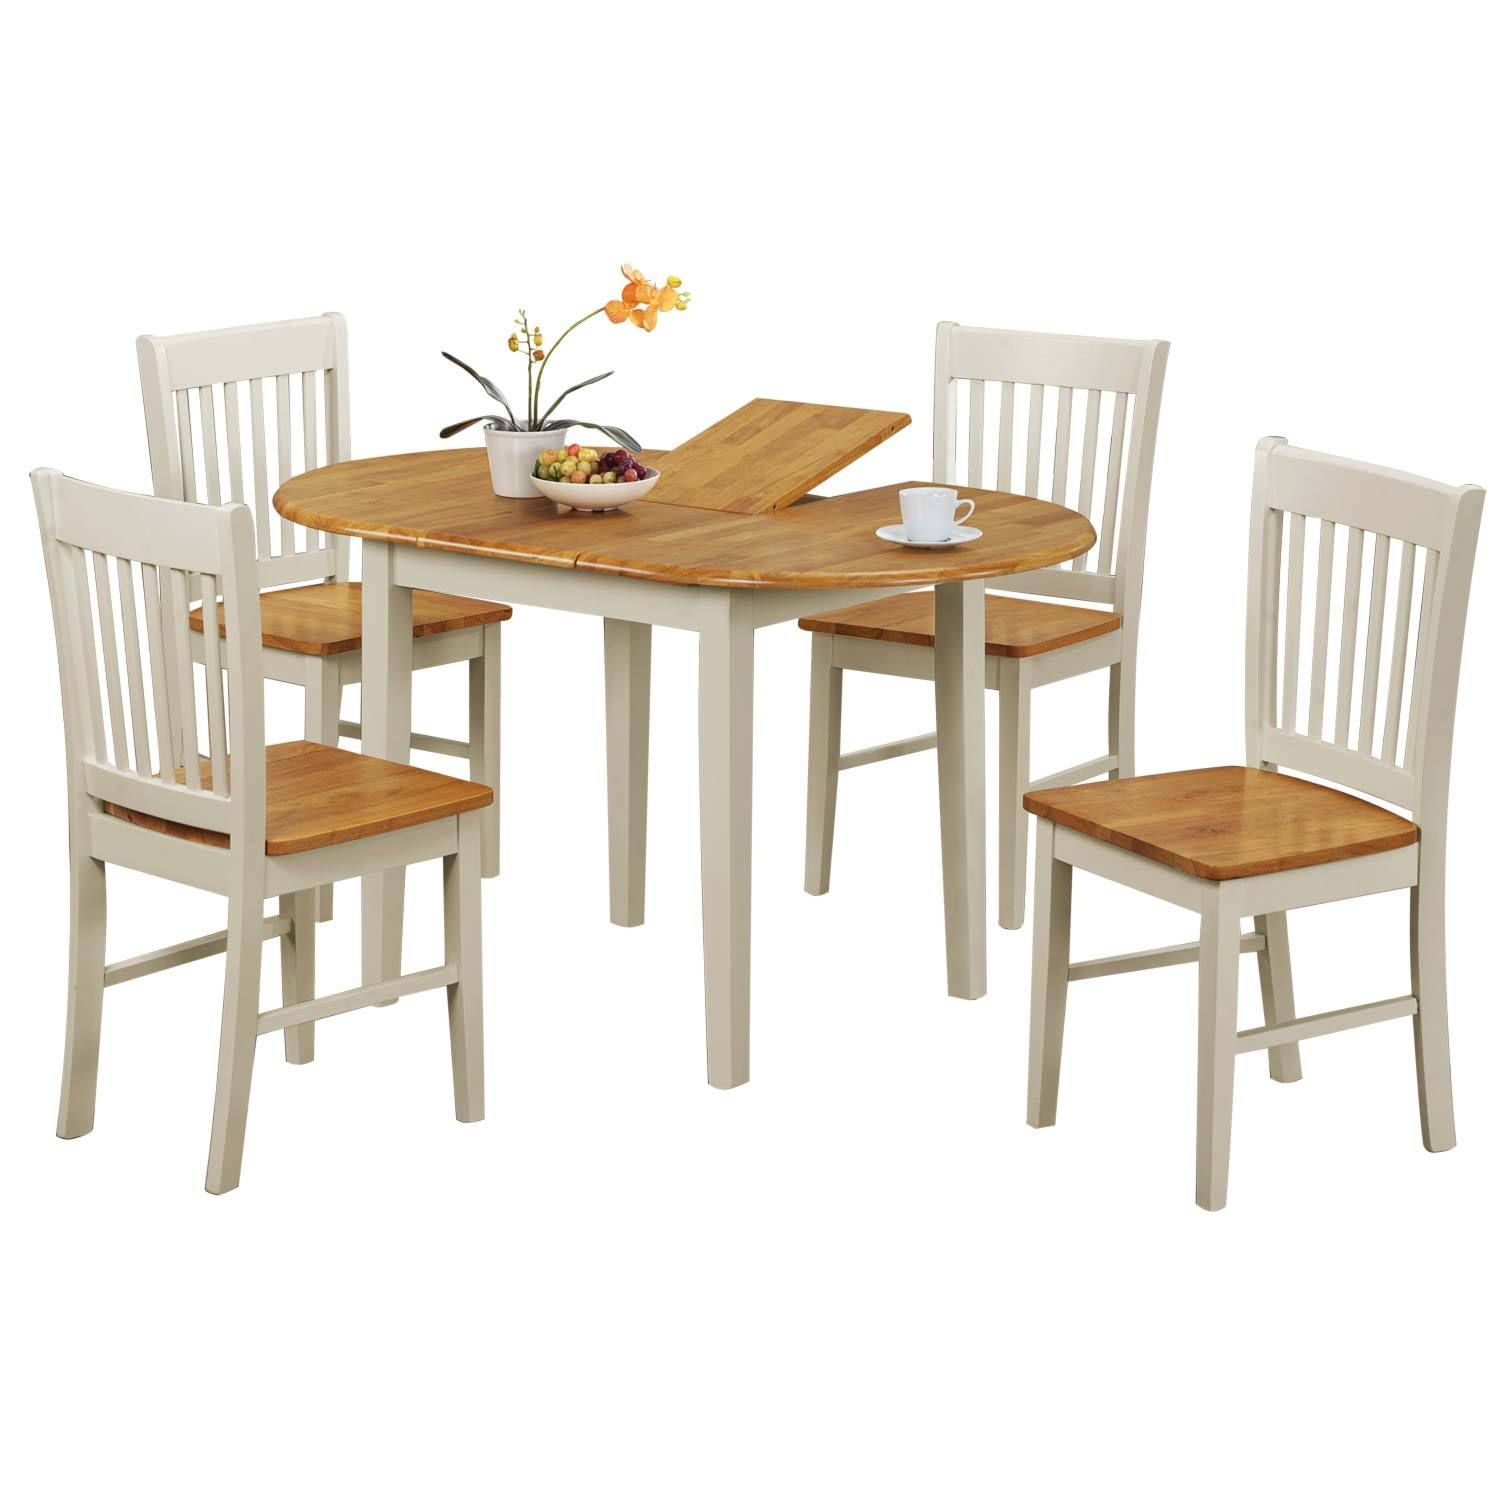 Kentucky Extending Dining Set  Home Inspiration  Pinterest Unique Extending Dining Room Tables And Chairs Inspiration Design